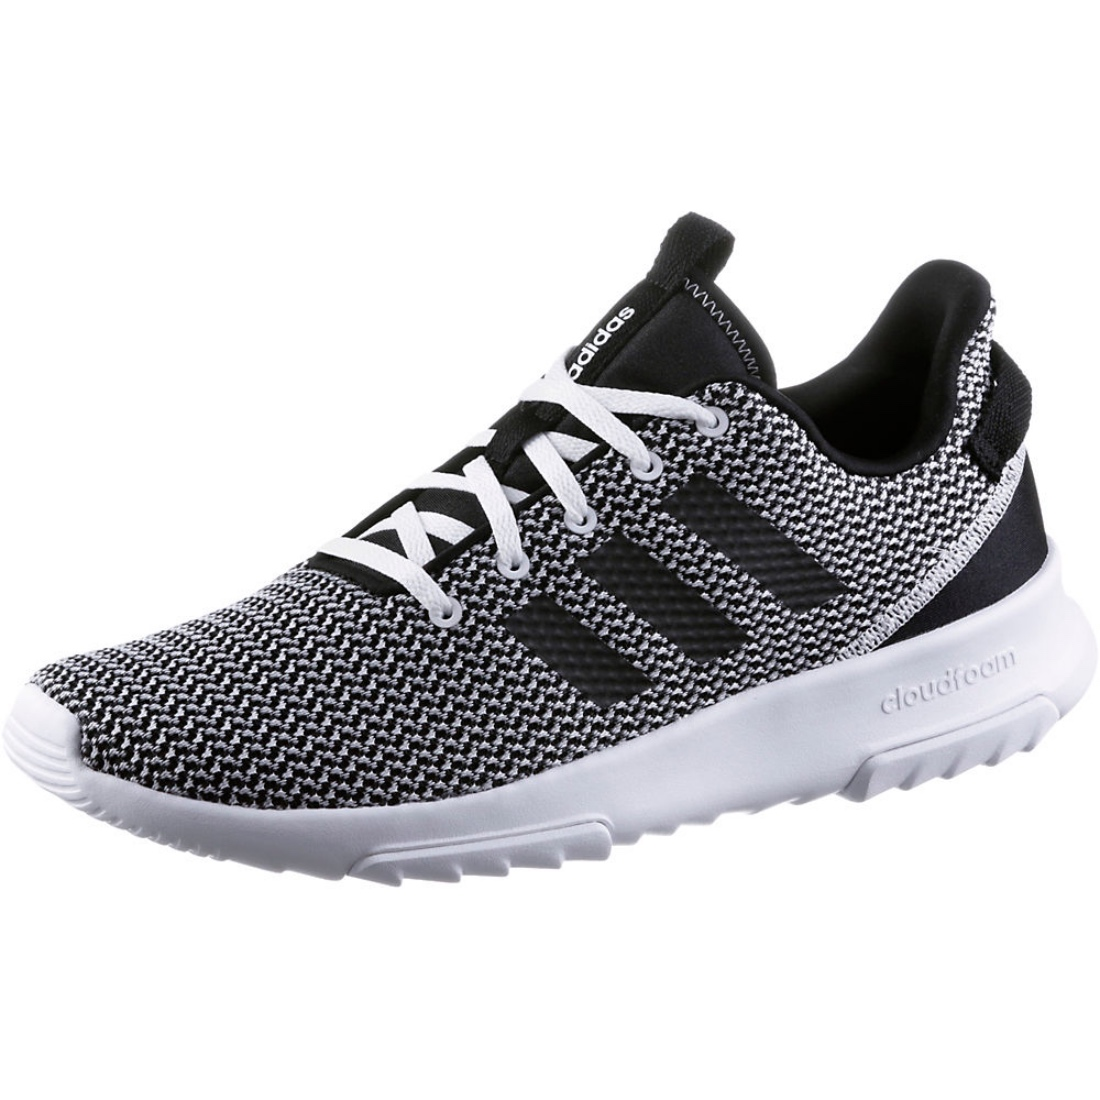 Adidas Racer Tr Running Shoes